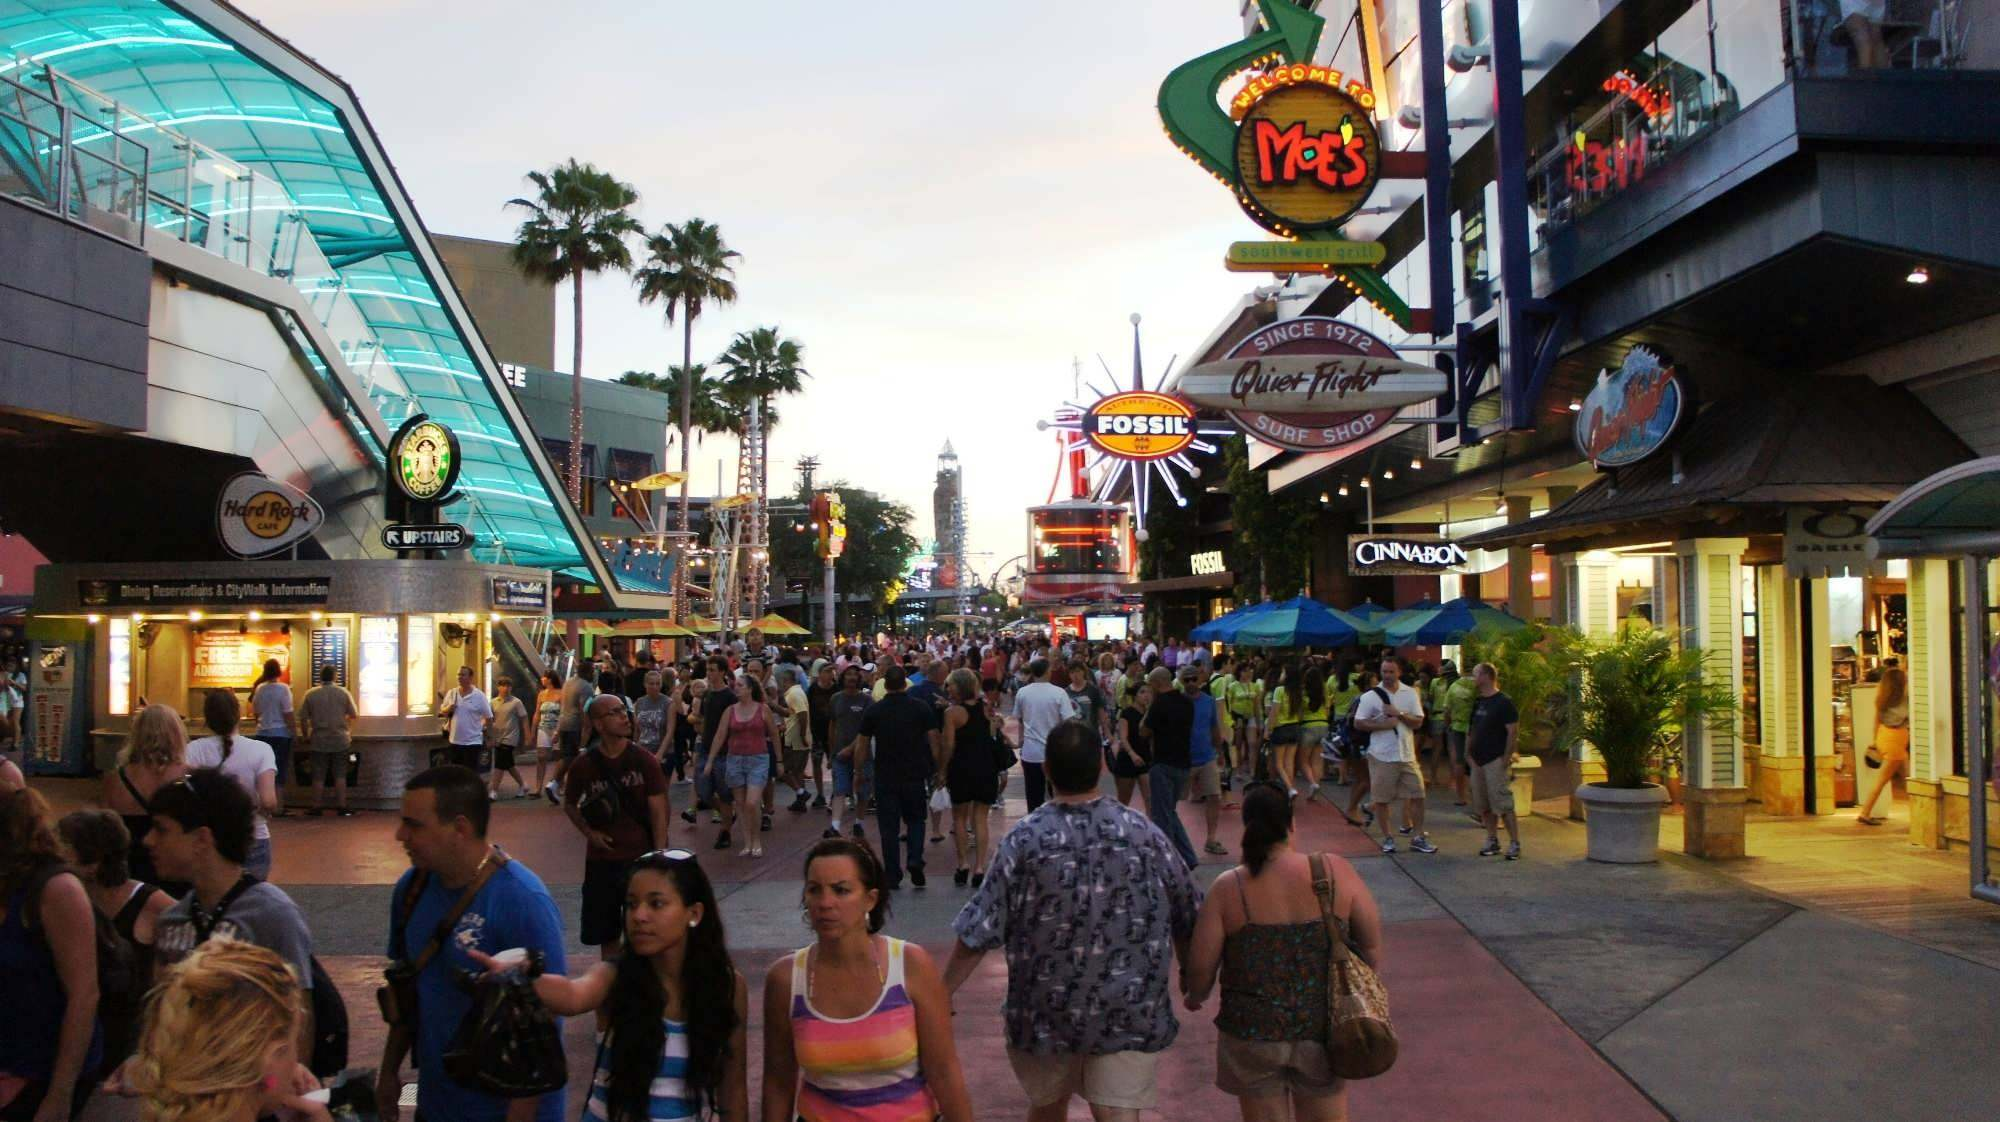 Top 5 reasons CityWalk is better than Downtown Disney